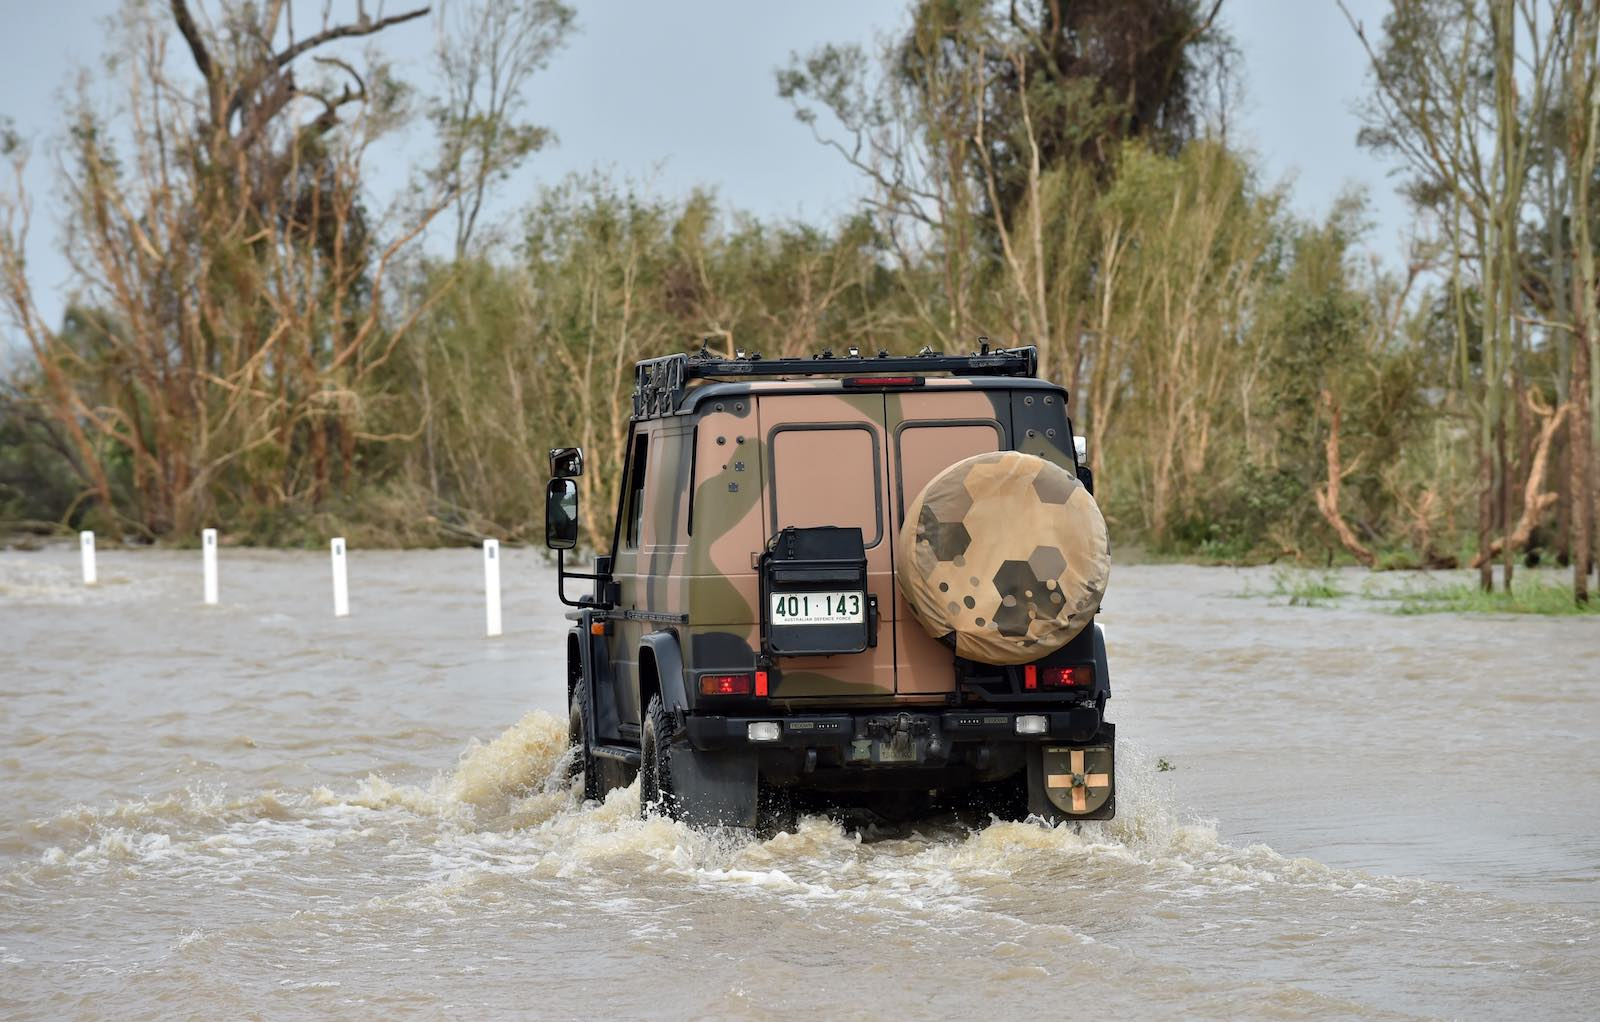 An Australian army vehicle in floodwaters near the Queensland town of Bowen in March 2017 following Cyclone Debbie (Photo: Peter Parks via Getty)